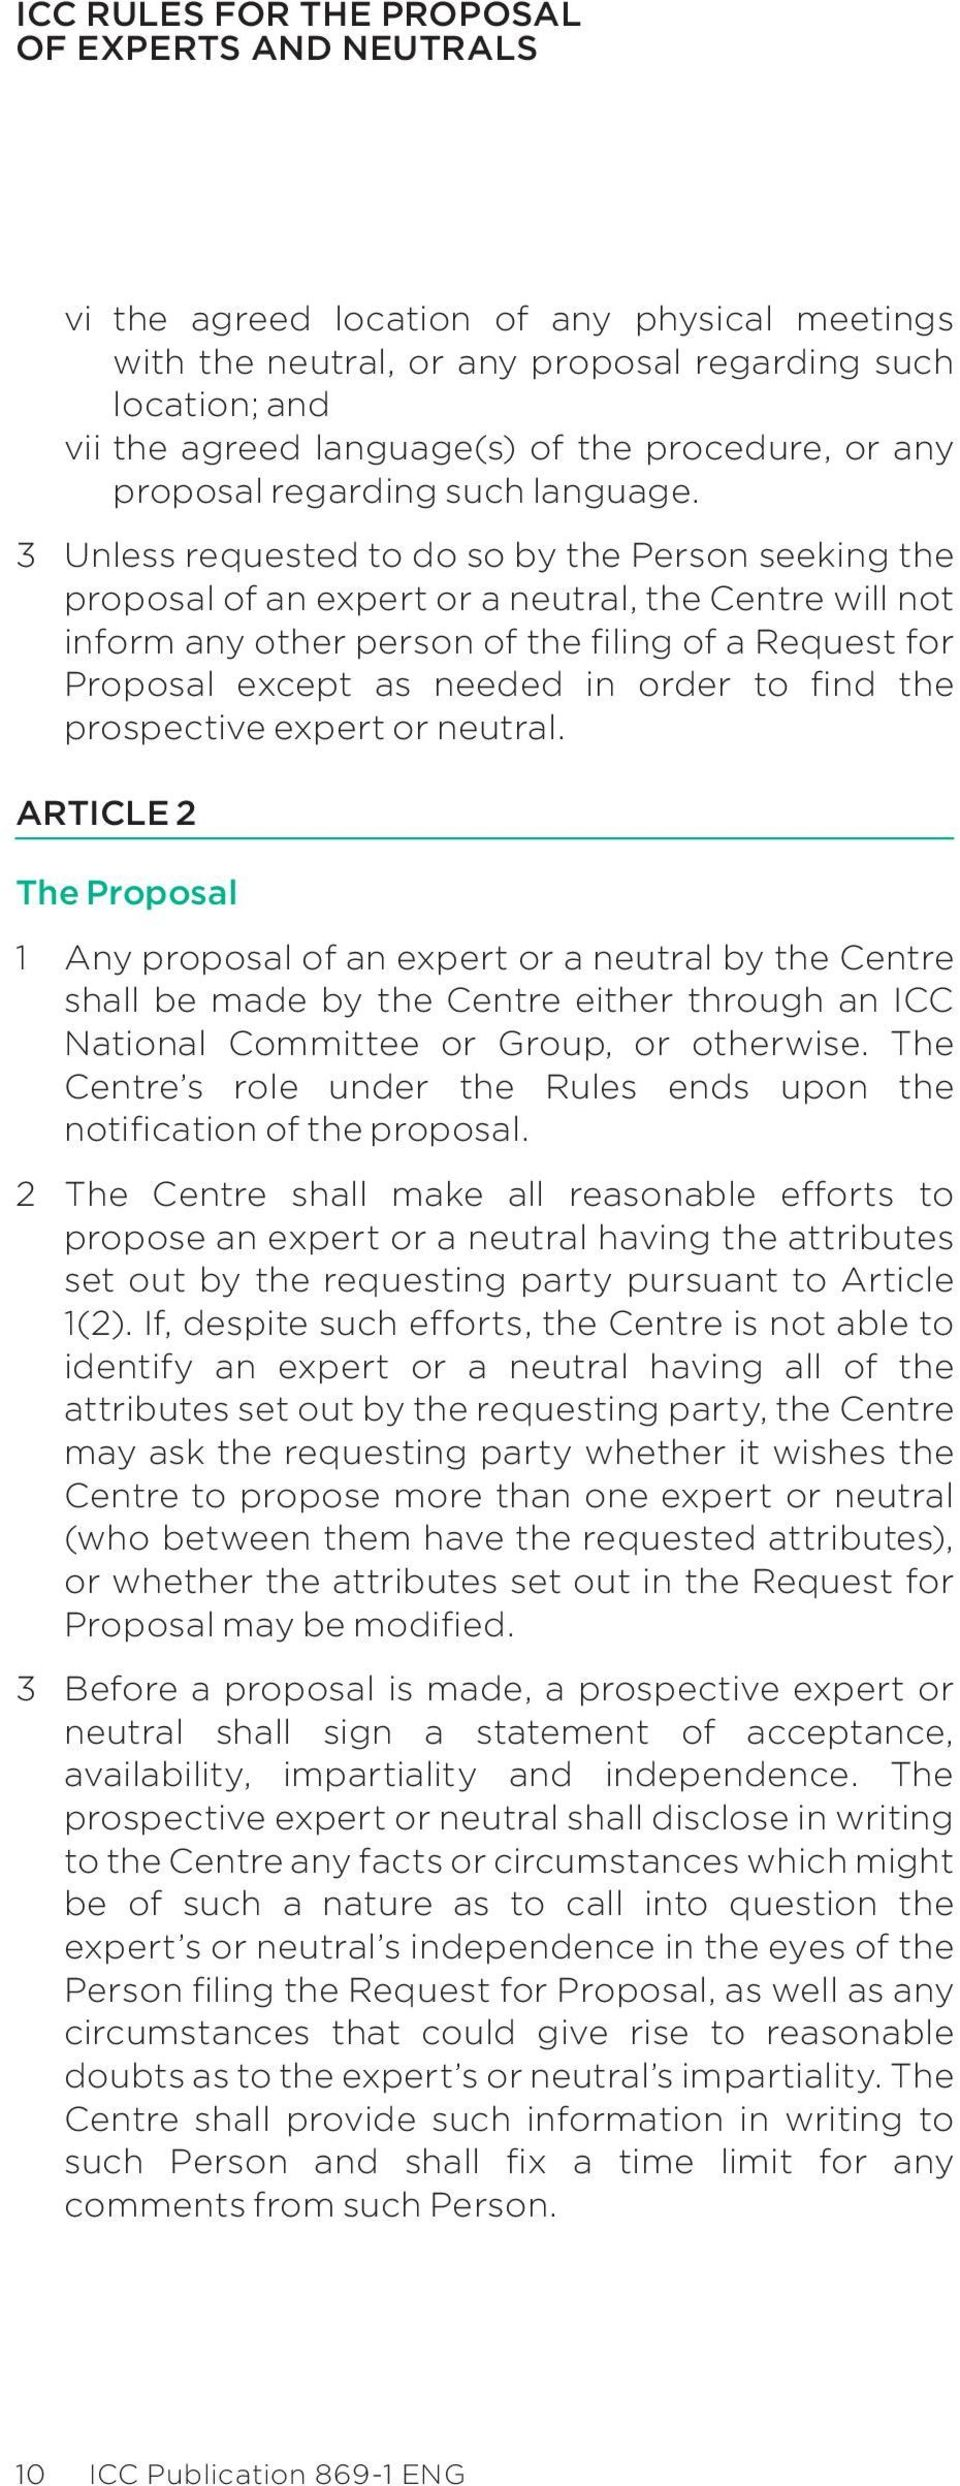 3 unless requested to do so by the Person seeking the proposal of an expert or a neutral, the Centre will not inform any other person of the filing of a Request for Proposal except as needed in order